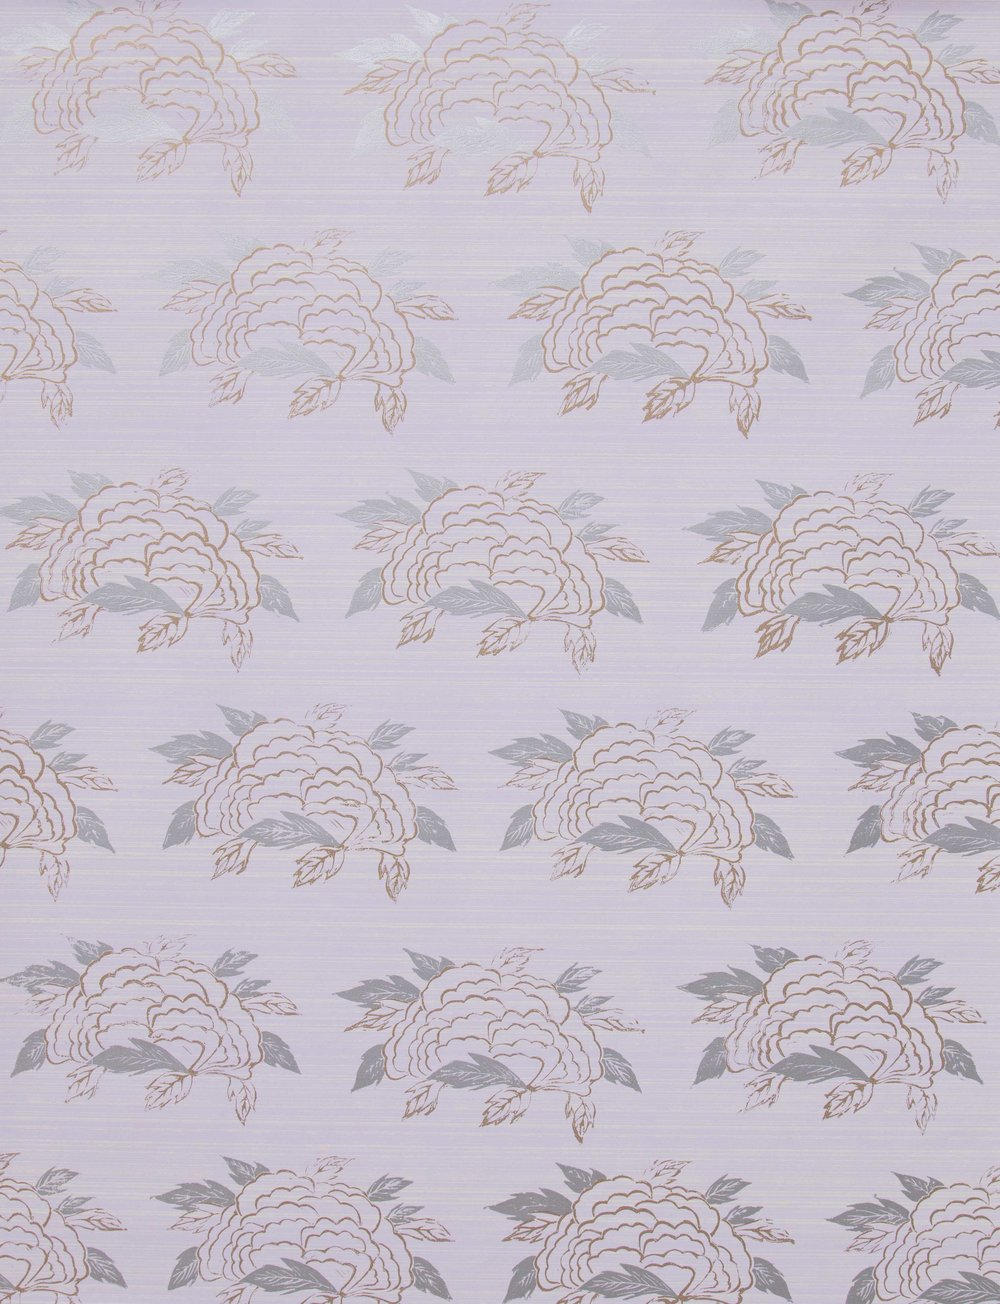 Krane Home_SL130-05 Chrysanthemum Lavender Wallpaper-3.jpeg